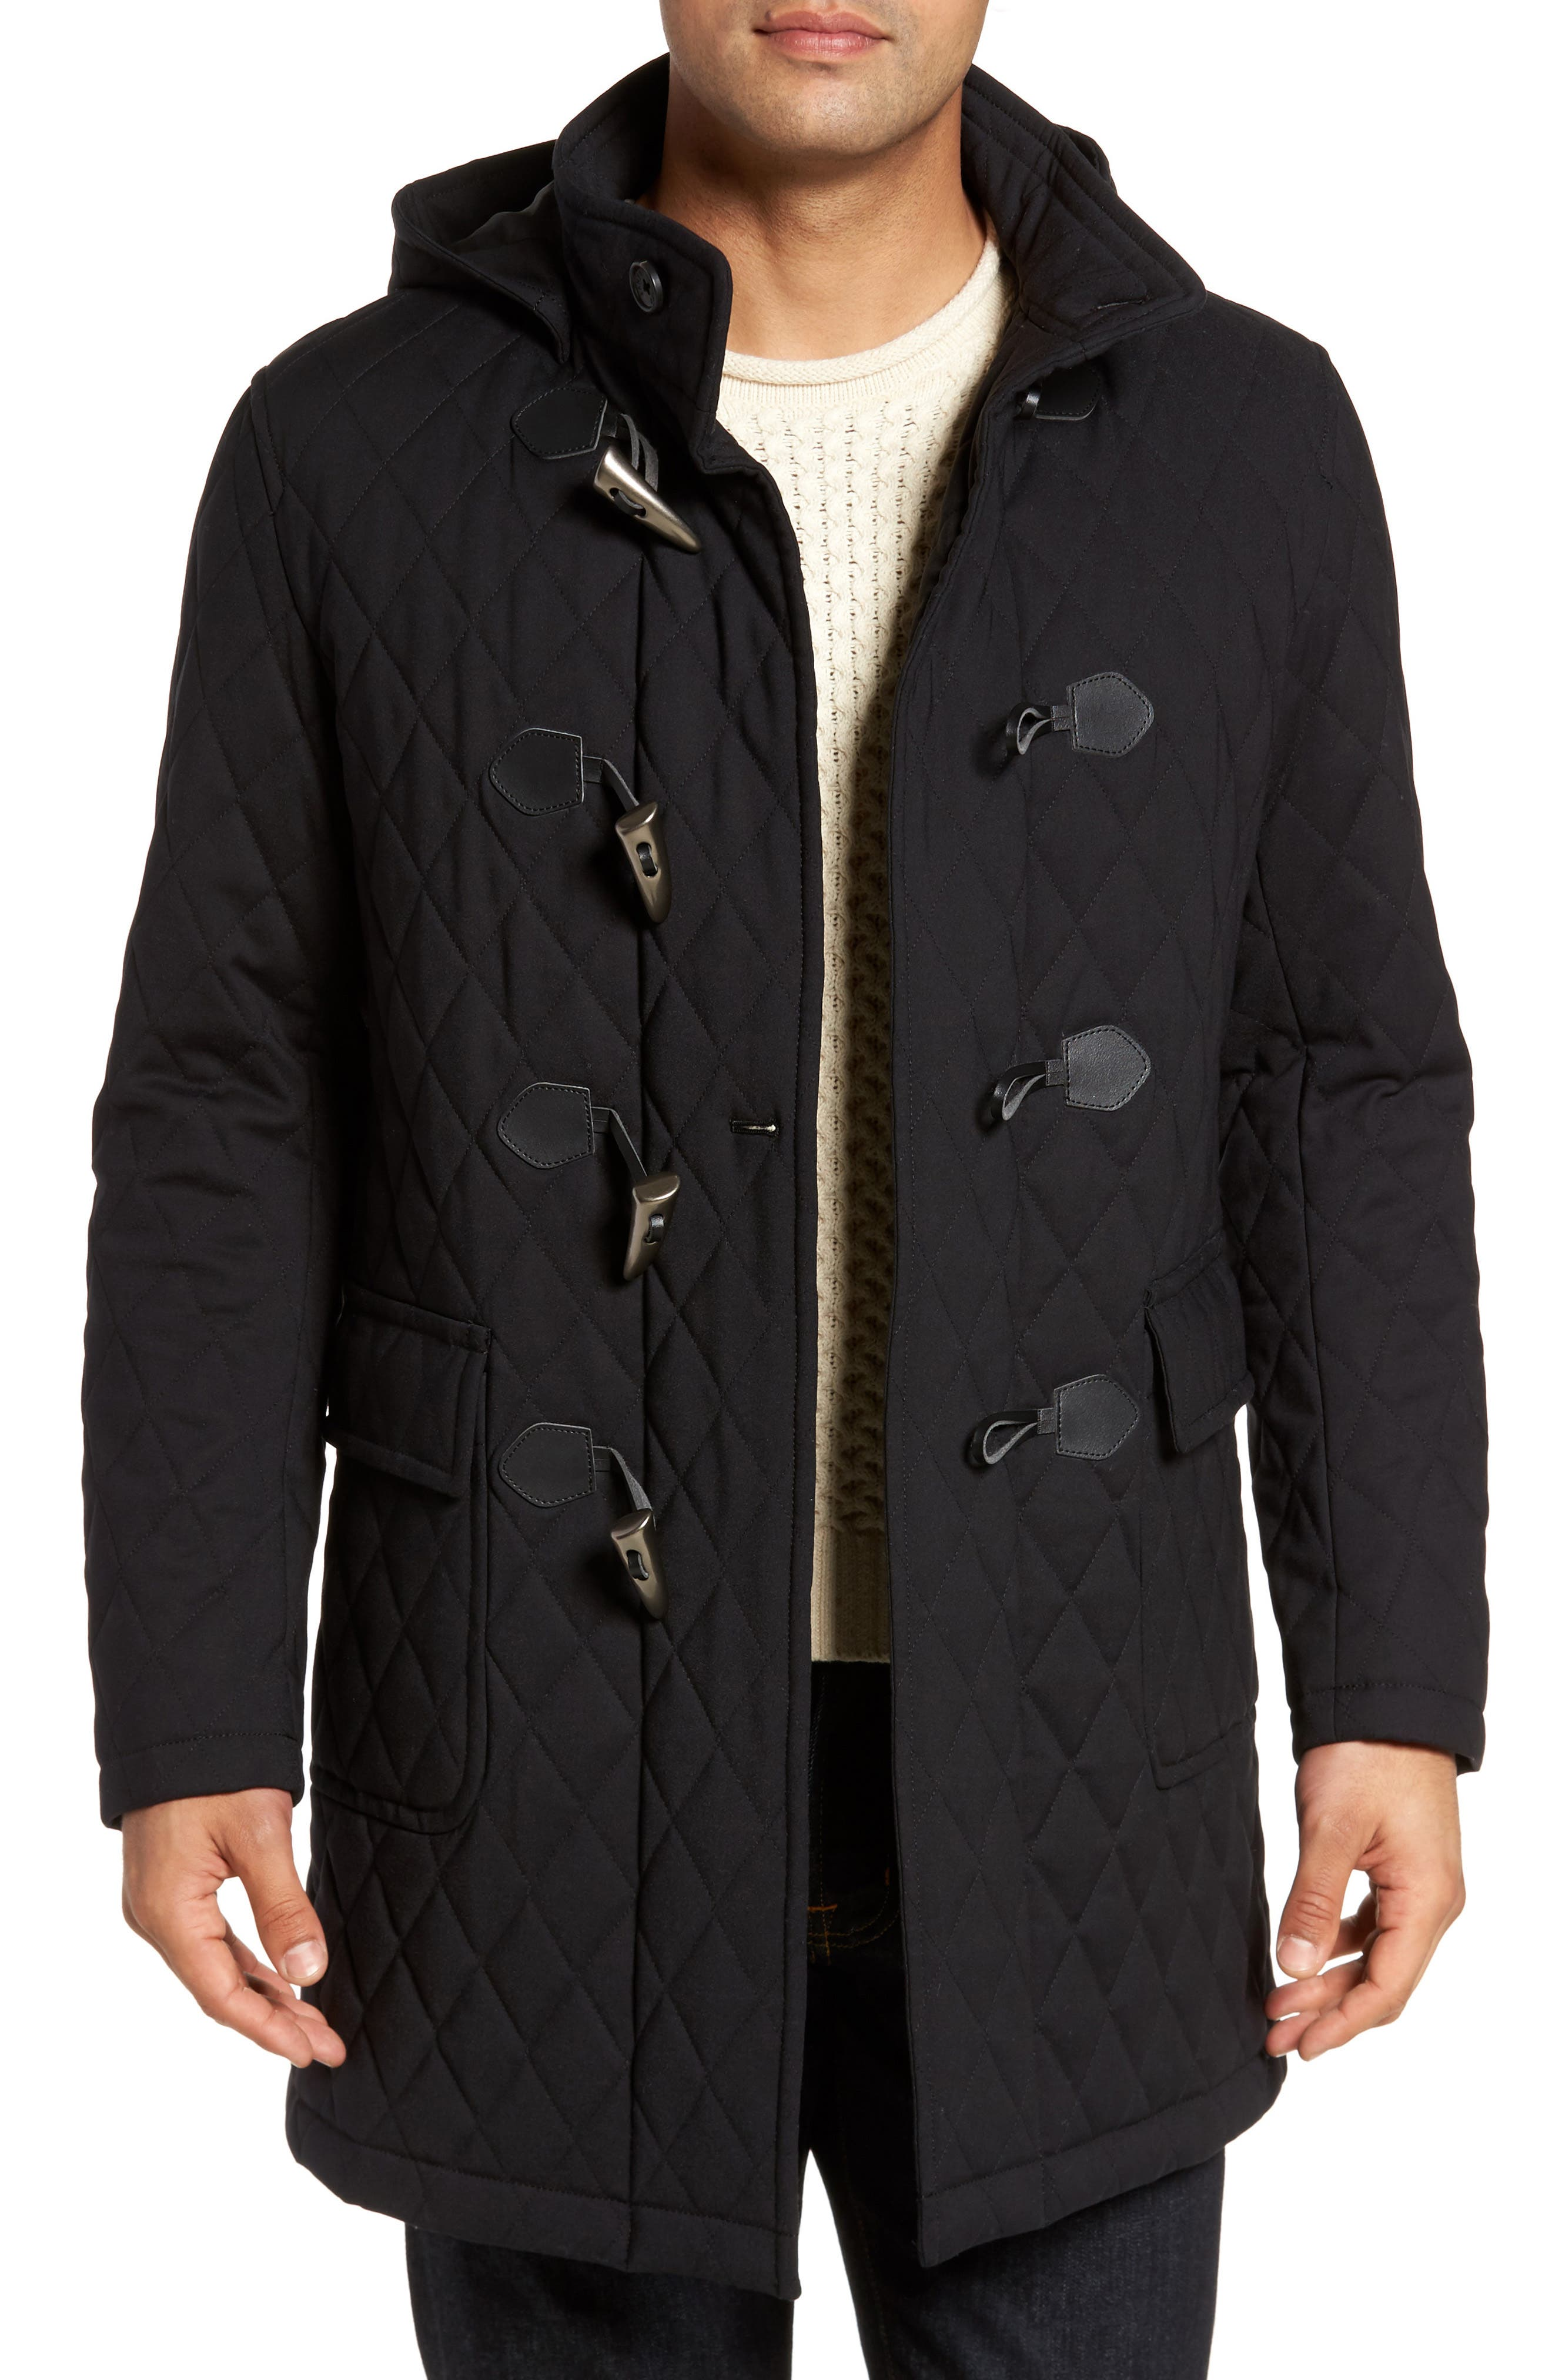 Francisco Quilted Duffle Coat,                         Main,                         color, Black